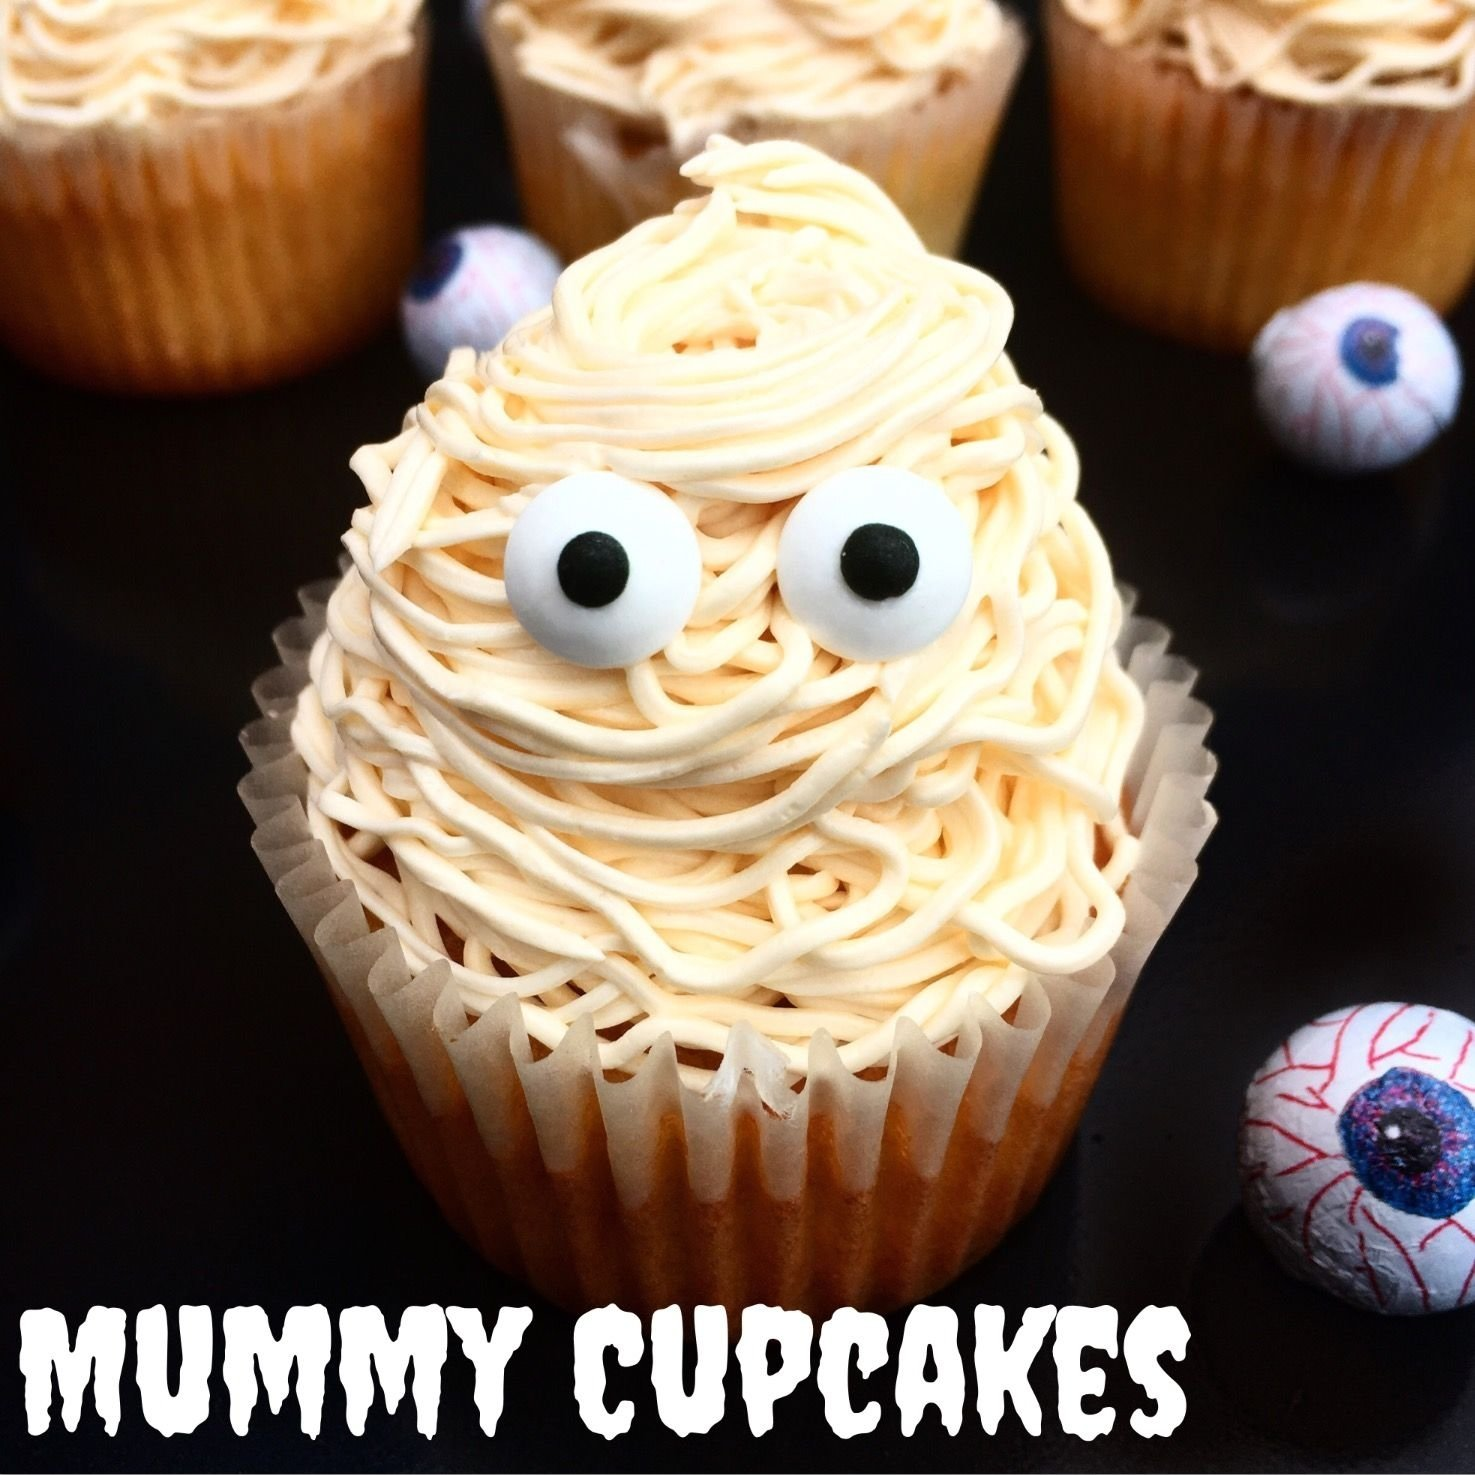 10 Awesome Halloween Baking Ideas For Kids mummy cupcakes fun and easy halloween baking ideas to do with kids 1 2021